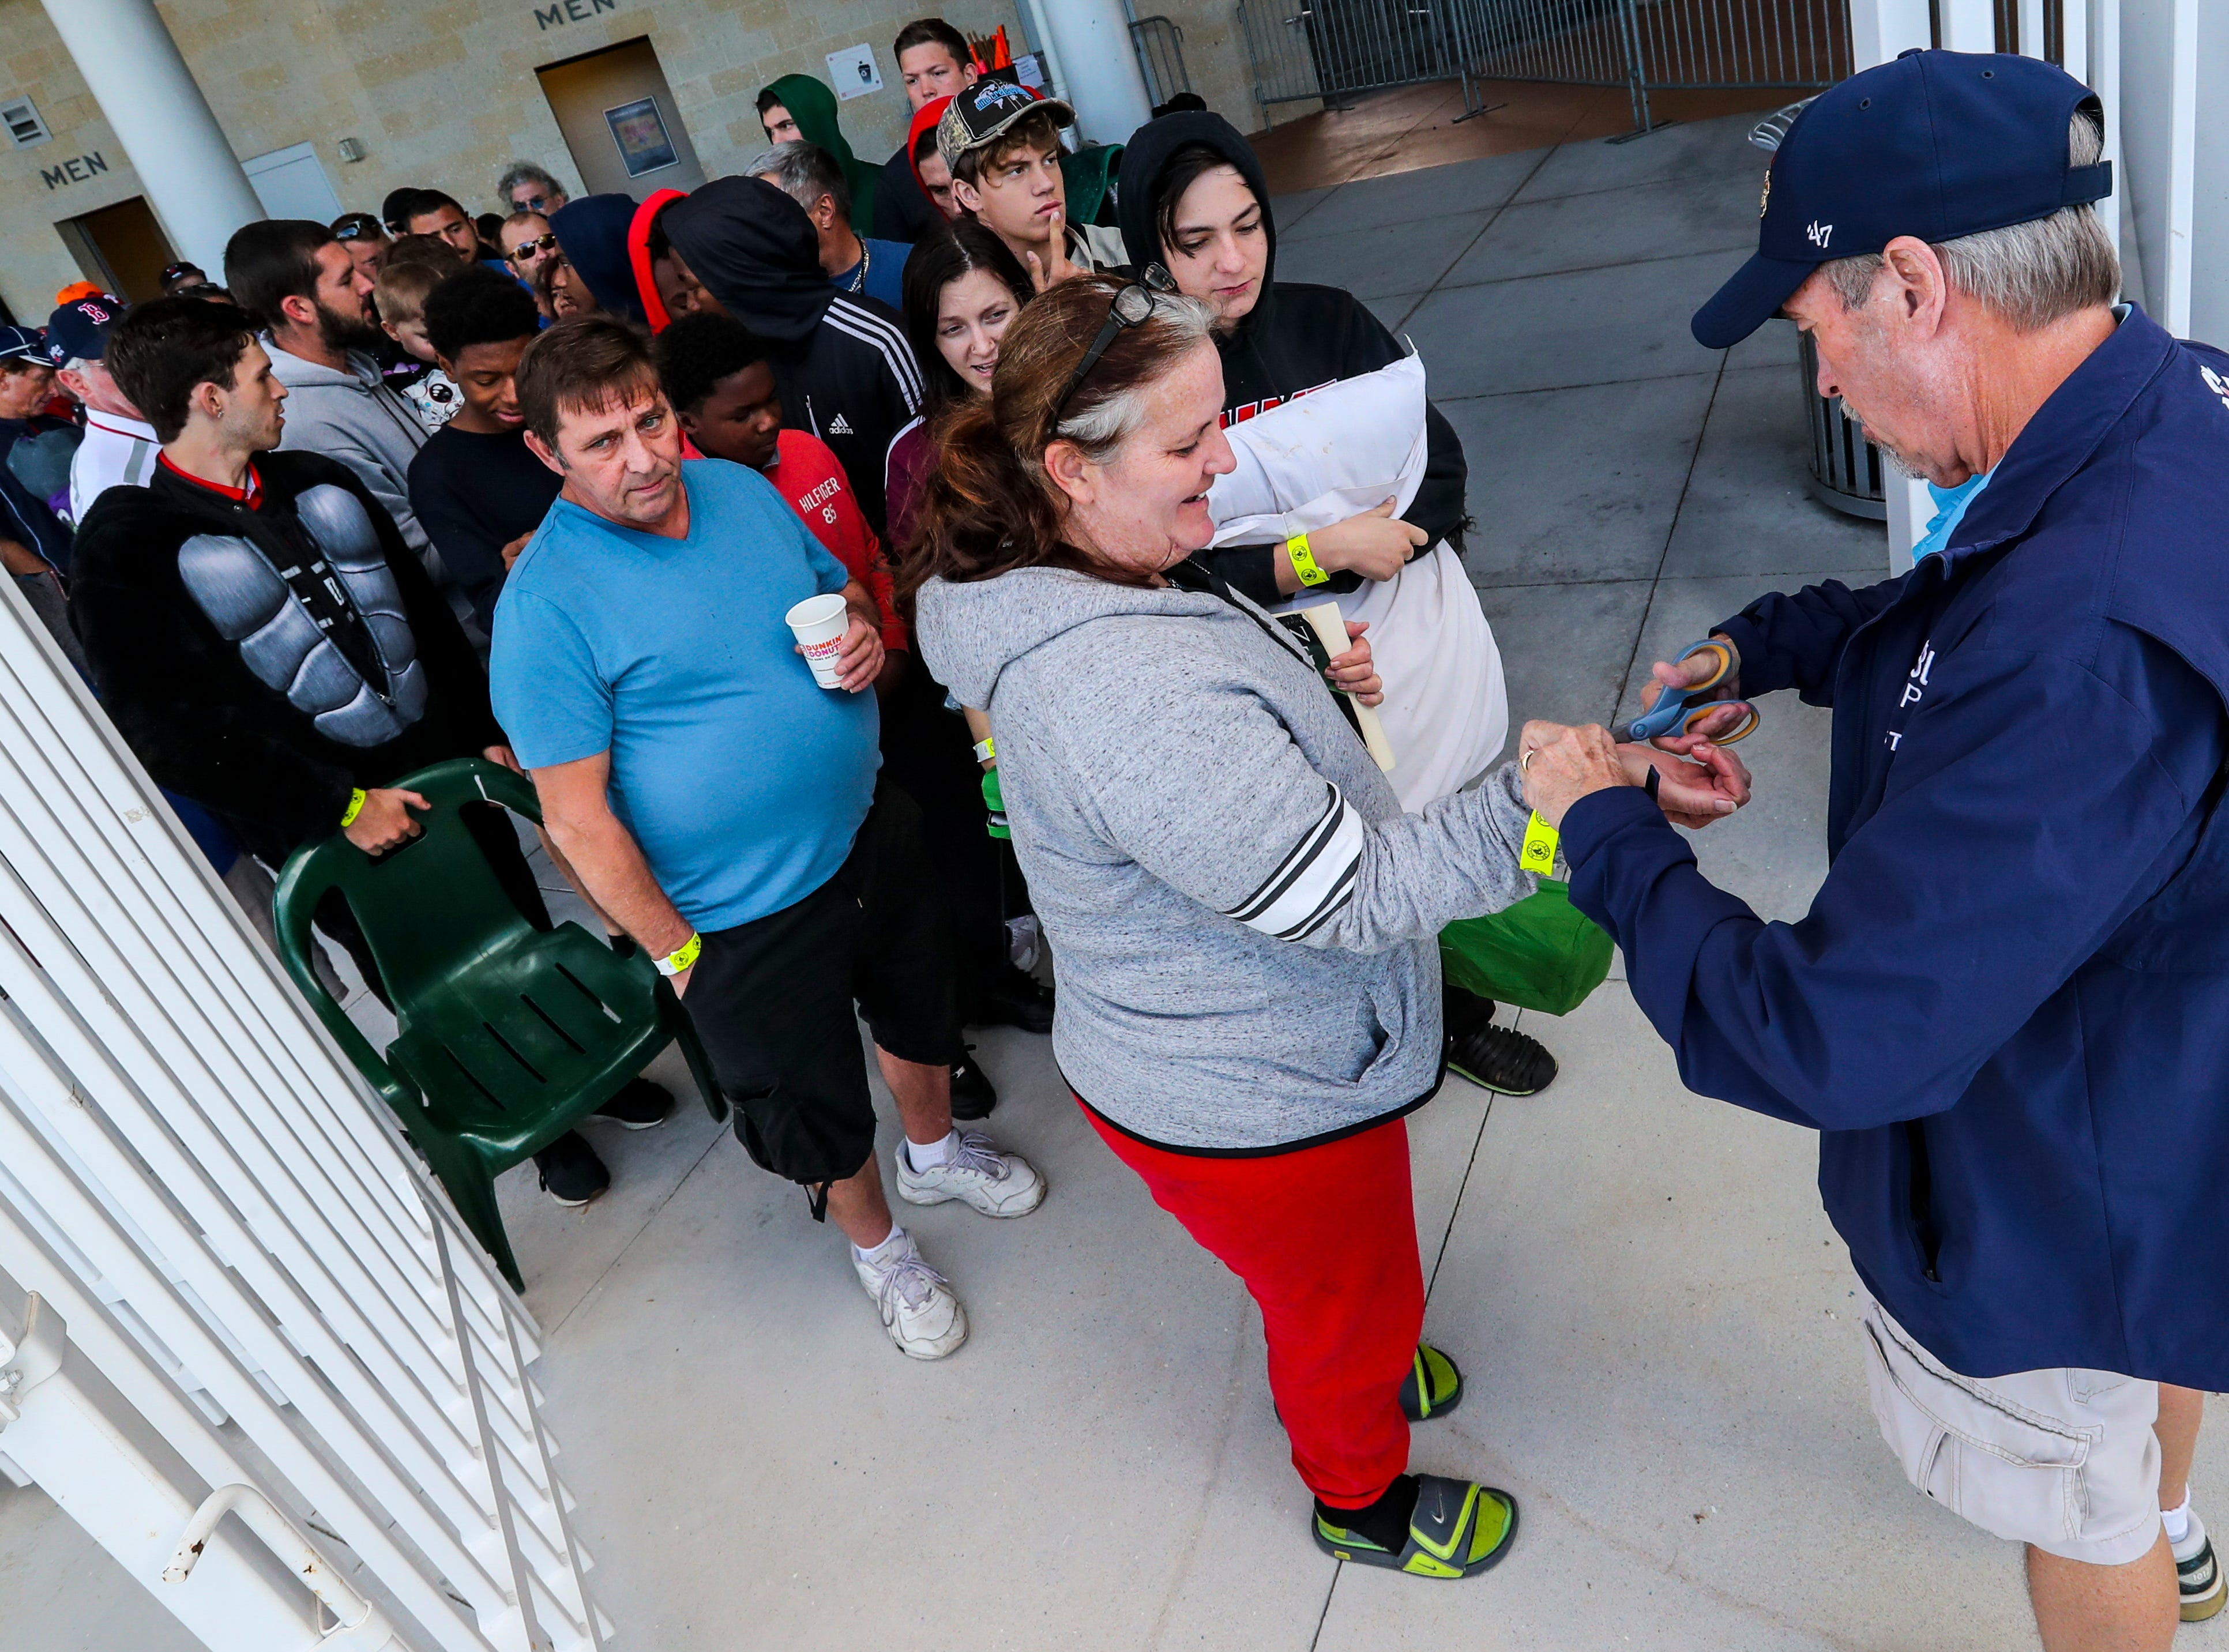 Boston fans gathered in line for spring training tickets. The crowd is excited for this season after the Red Sox won the World Series.